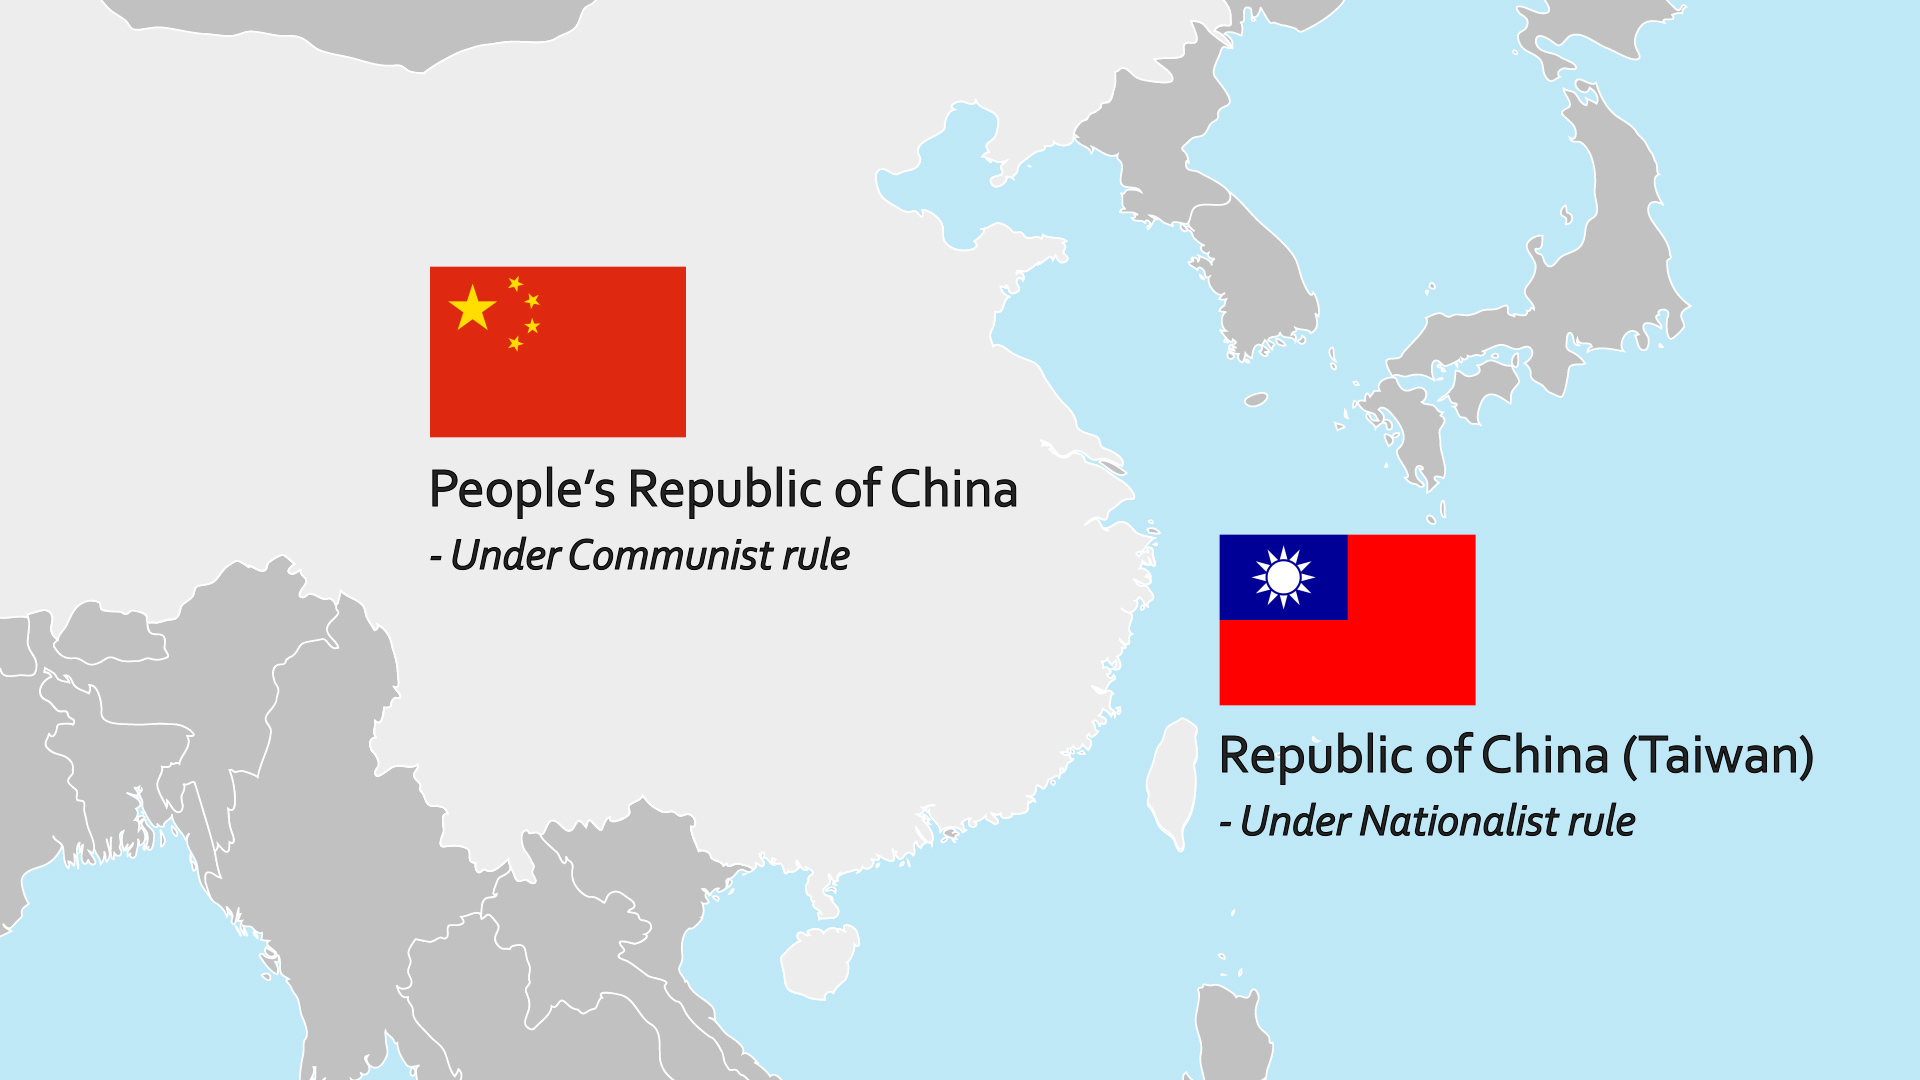 What is the core conflict between China and Taiwan?